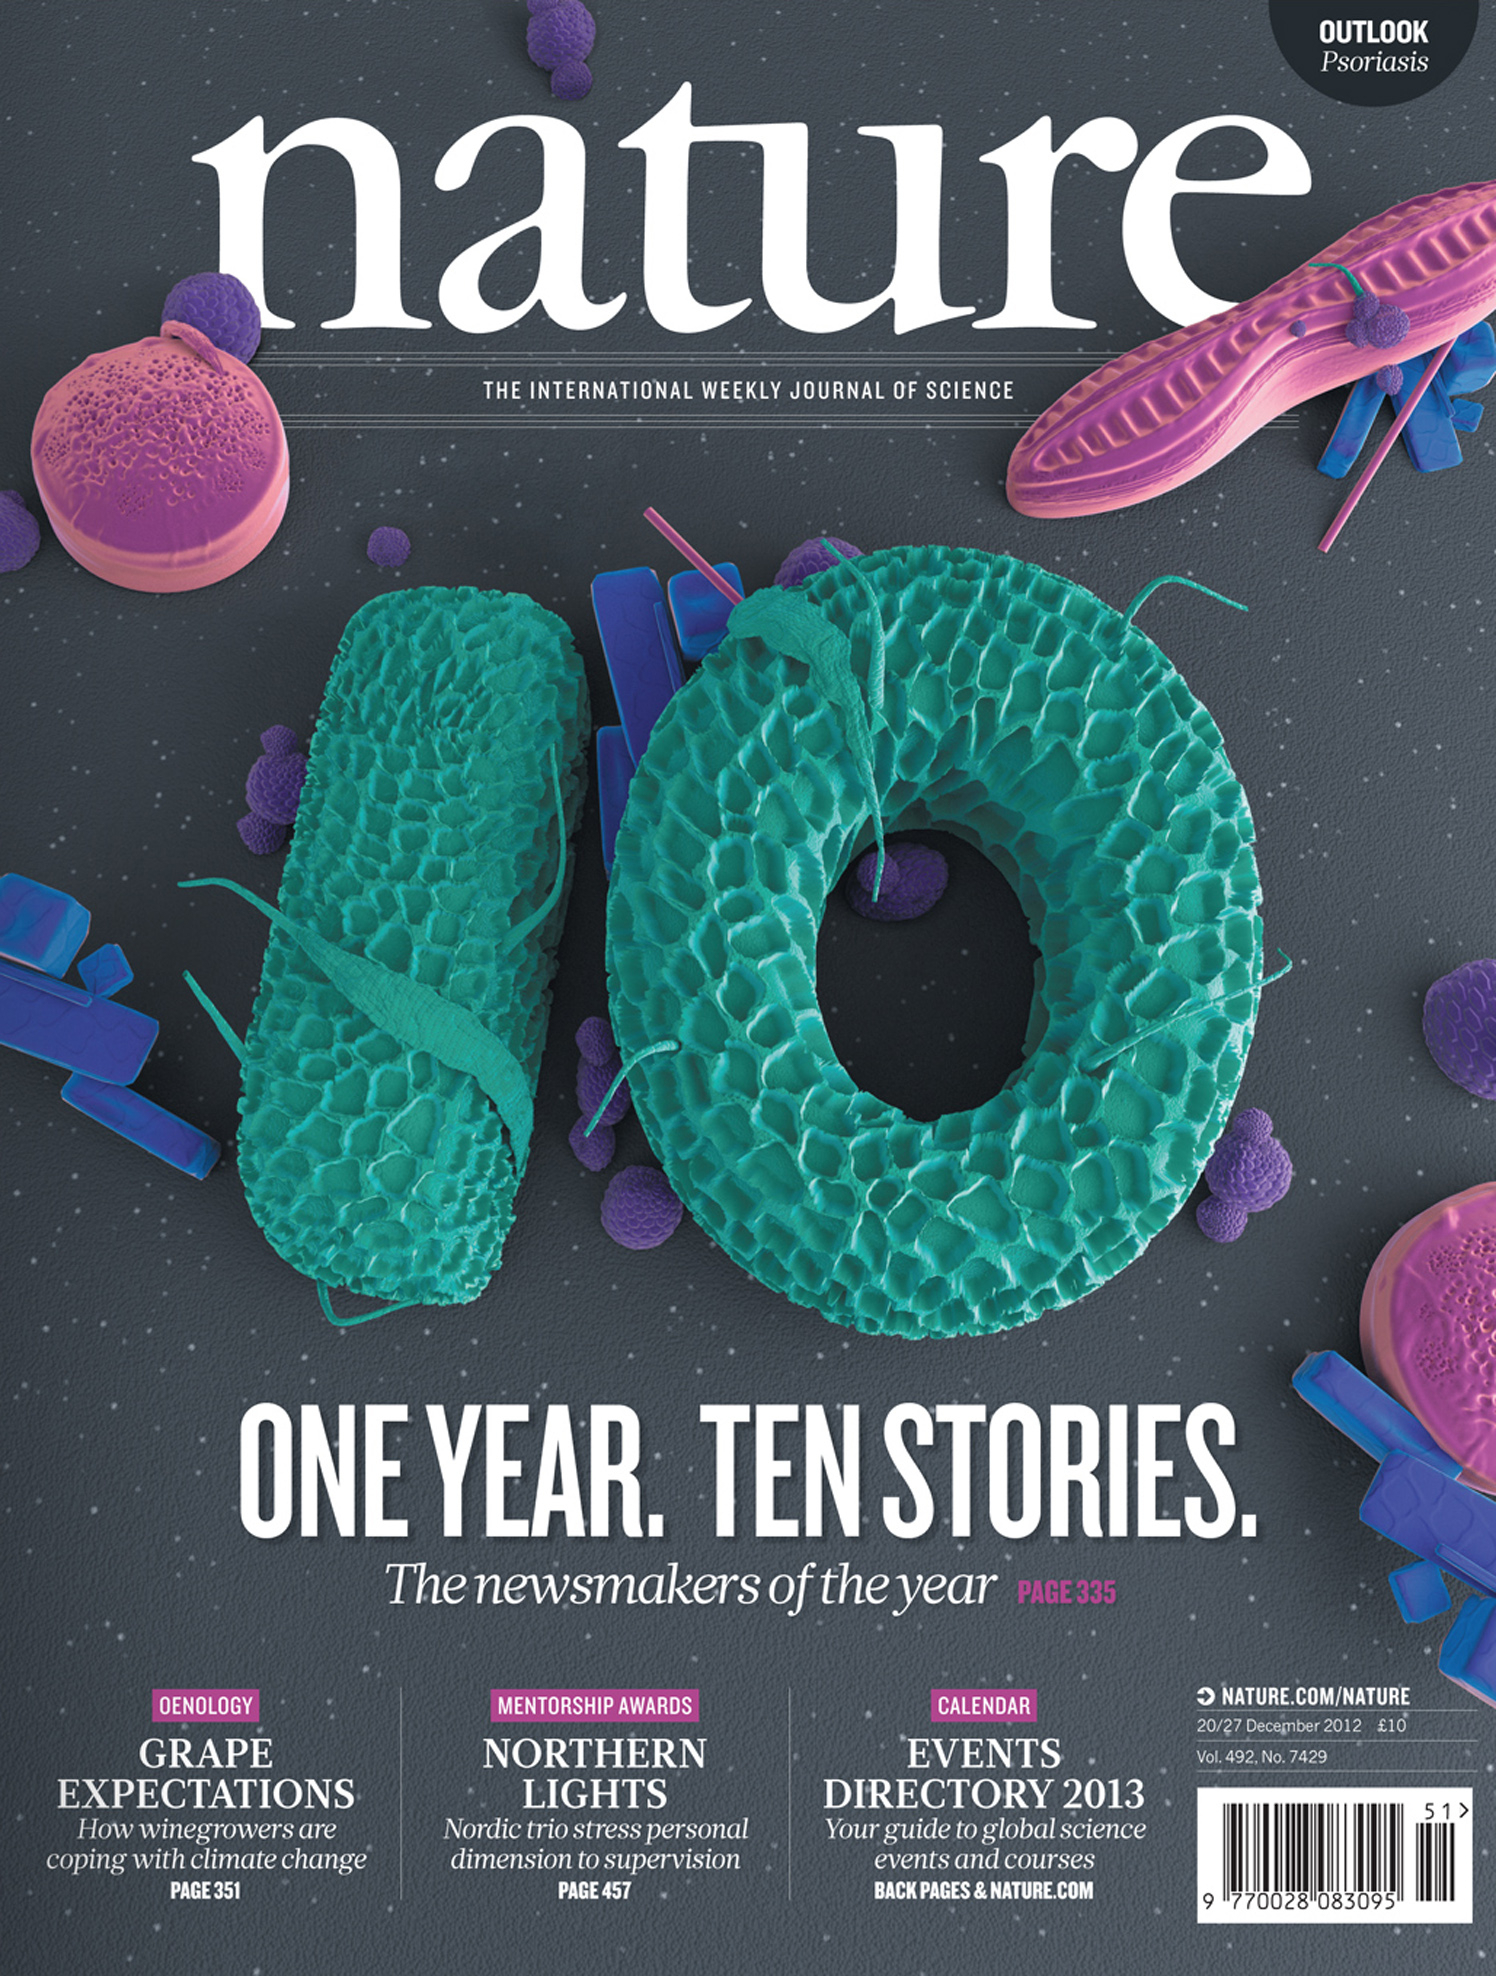 One Year, Ten Stories / Nature Magazine